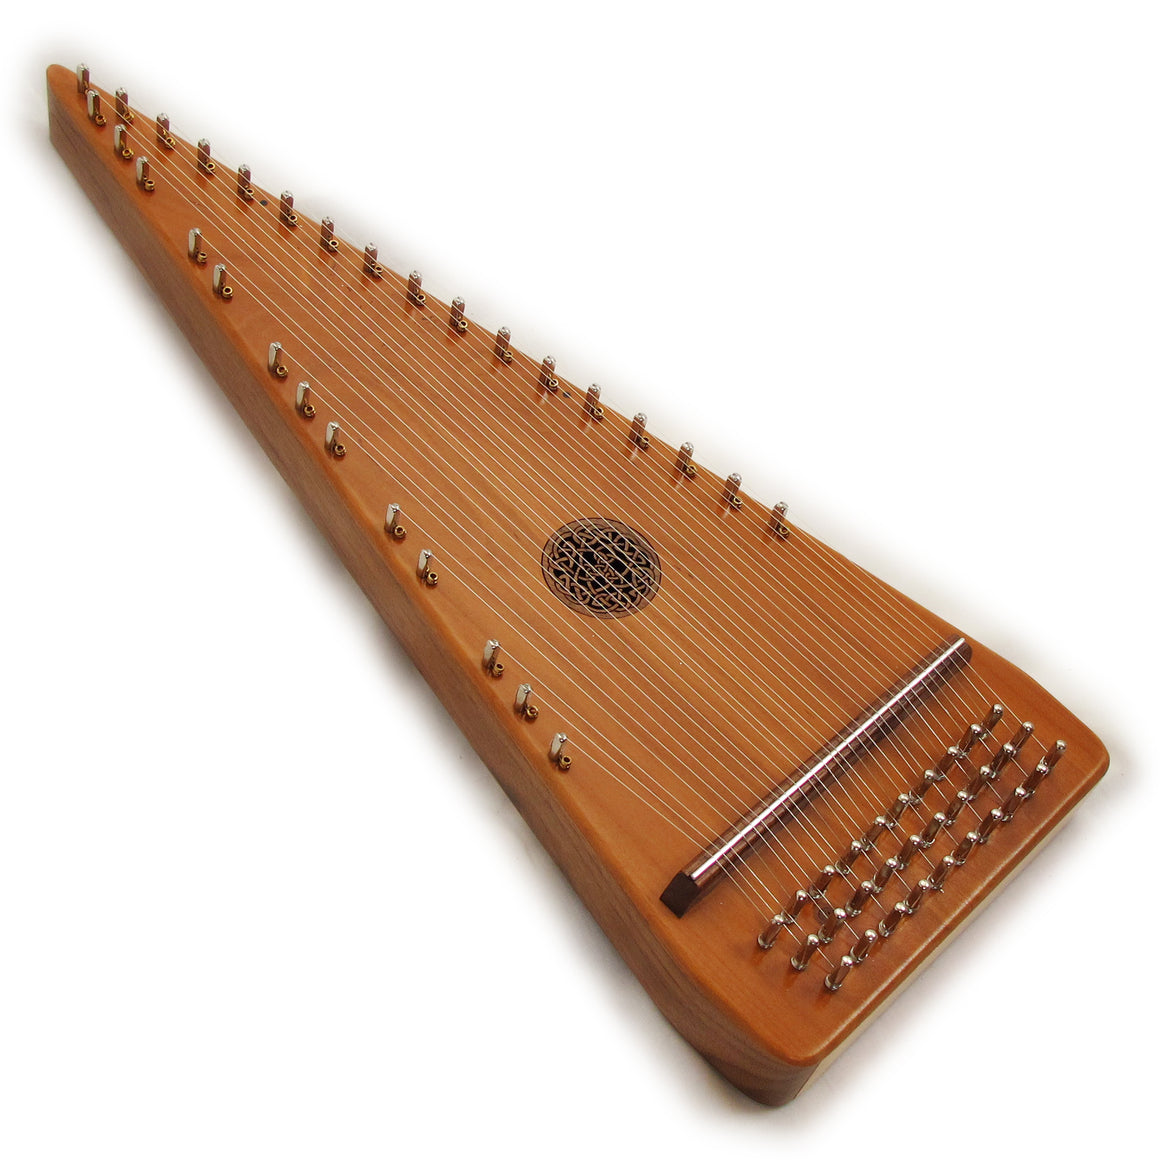 Cherry top bowed psaltery